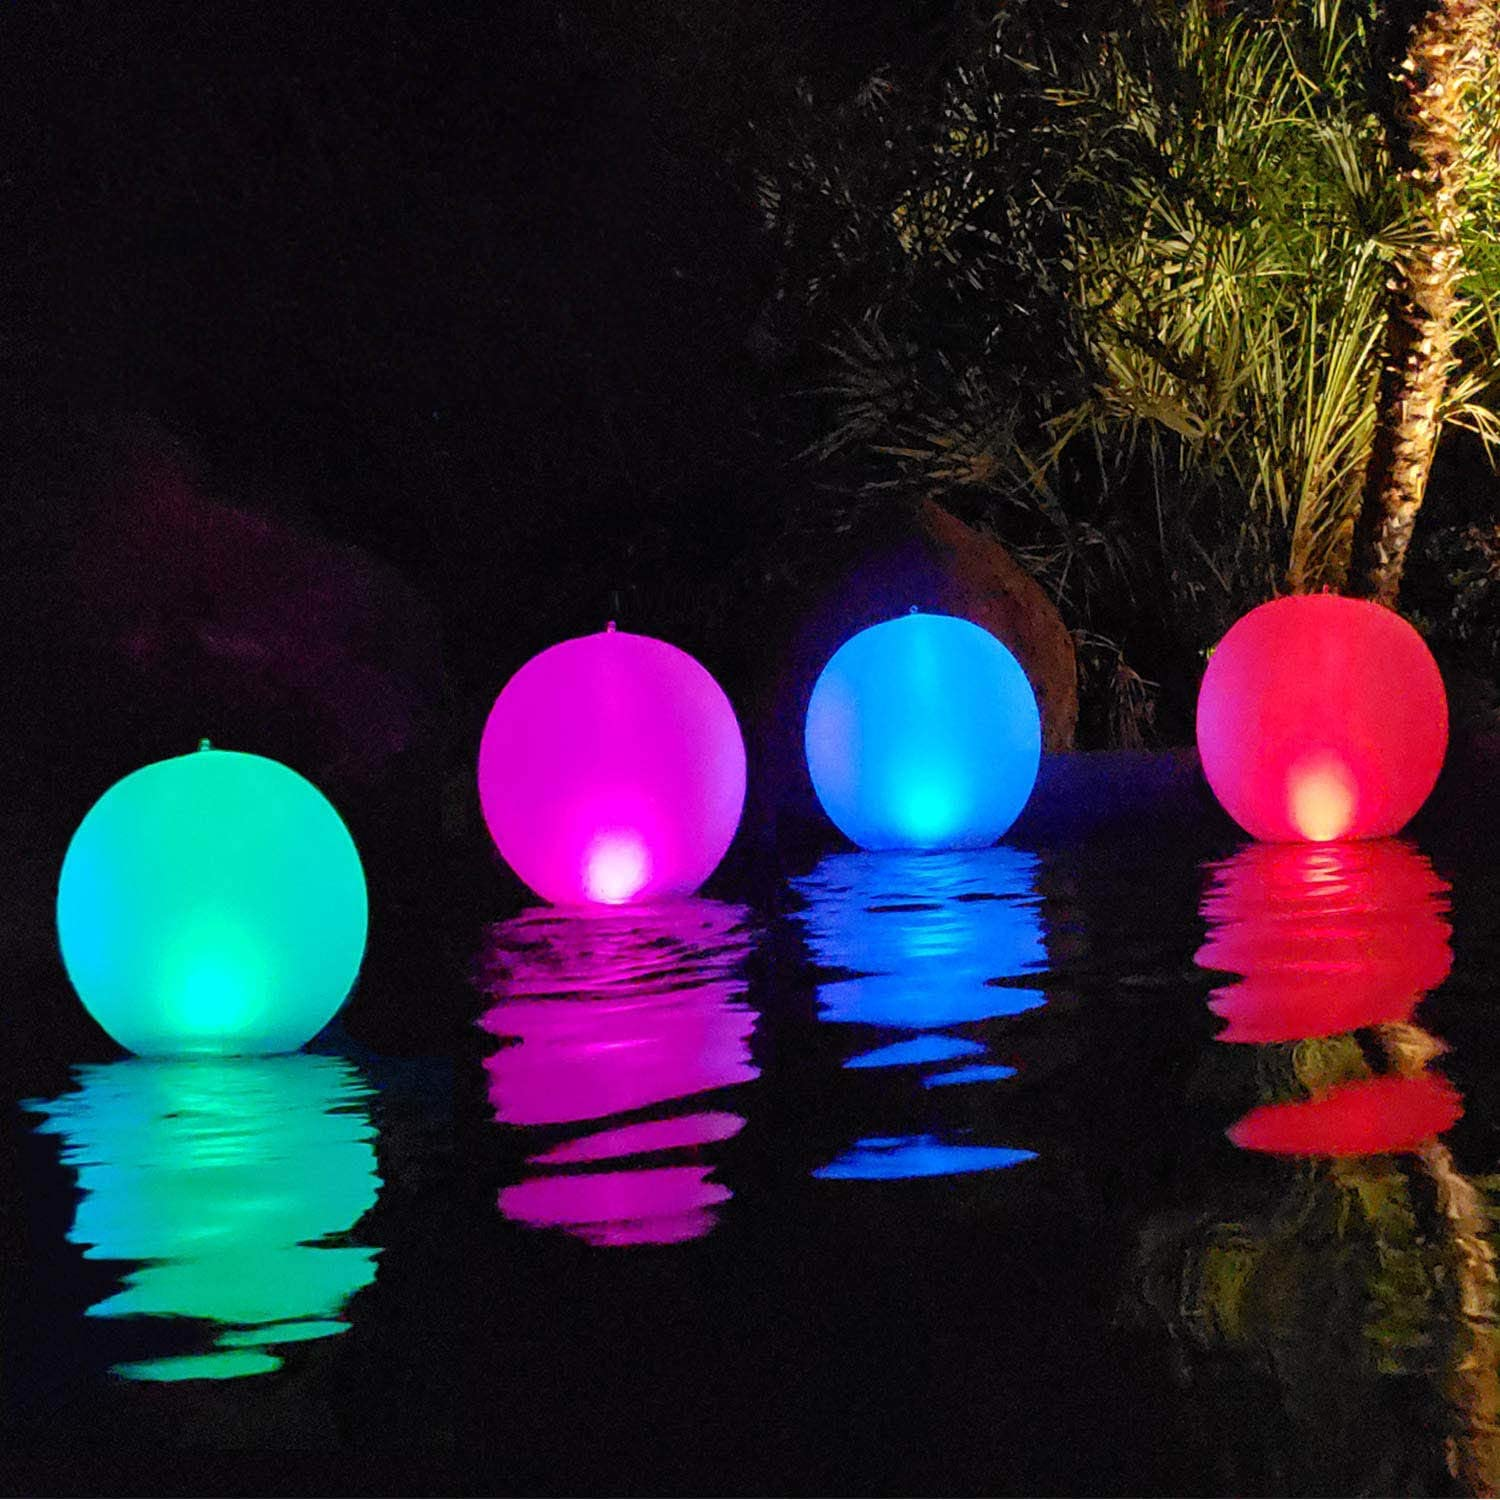 Solar Powered LED Inflatable Lights Pink Green Blue for Pool or Pond Set of 3